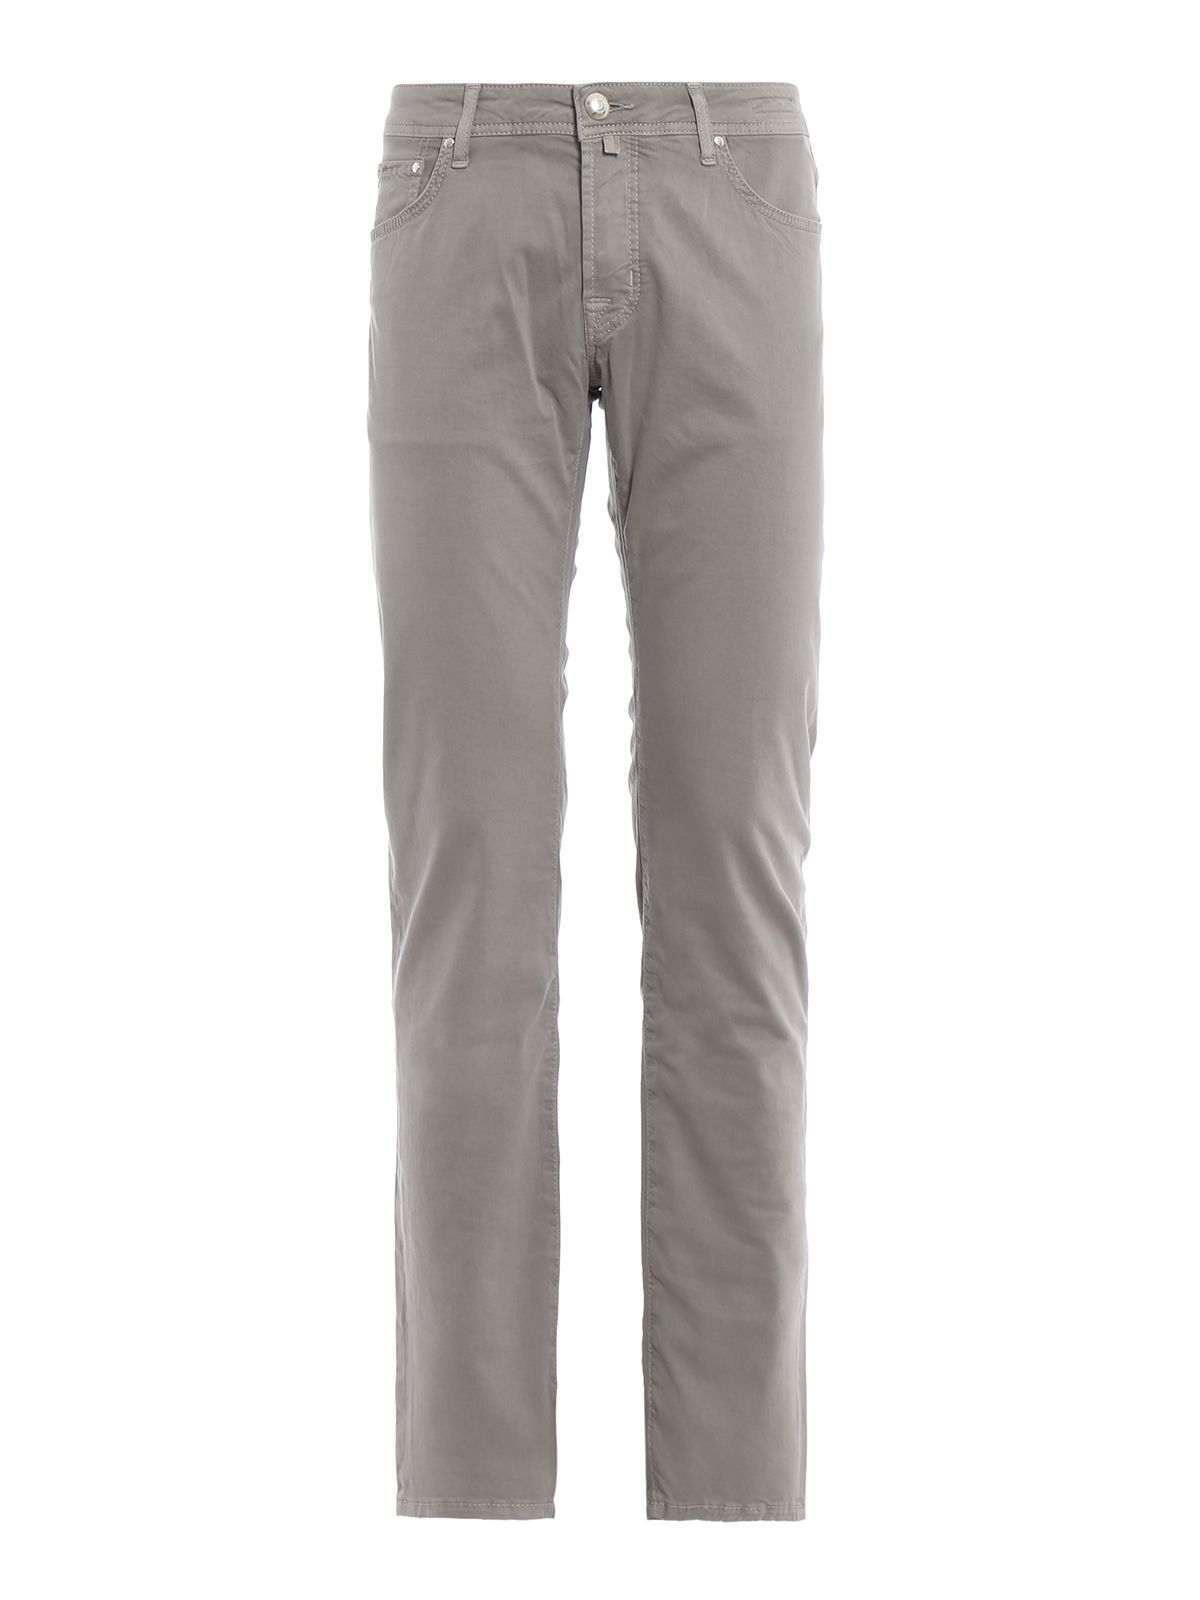 Jacob Cohen Pw622 Comf Grey Denim Tailored Jeans